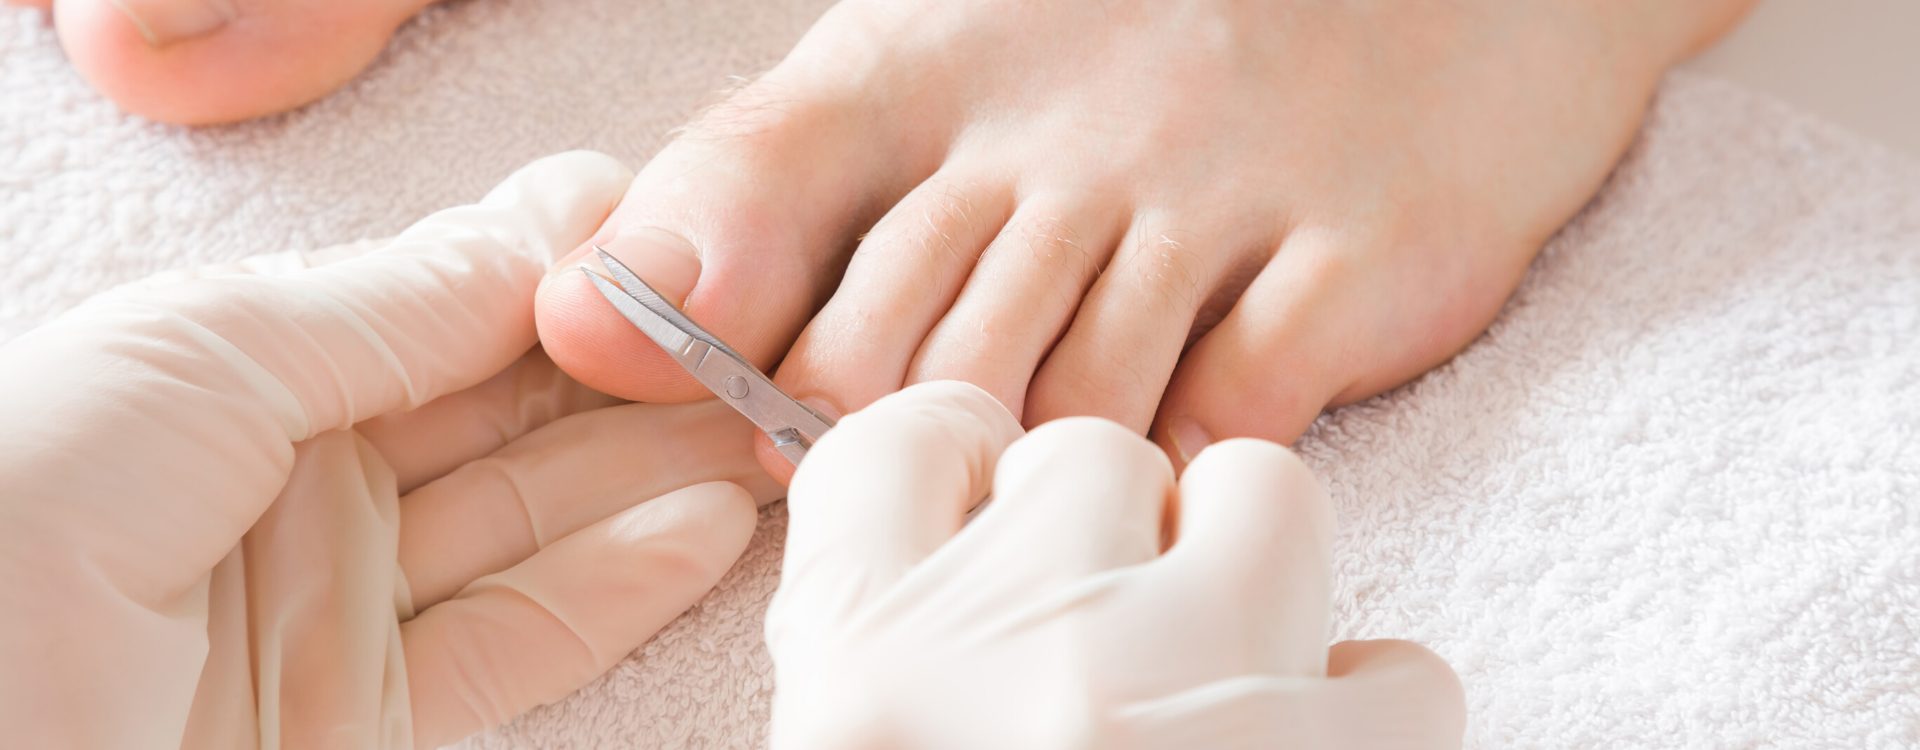 Medical pedicure